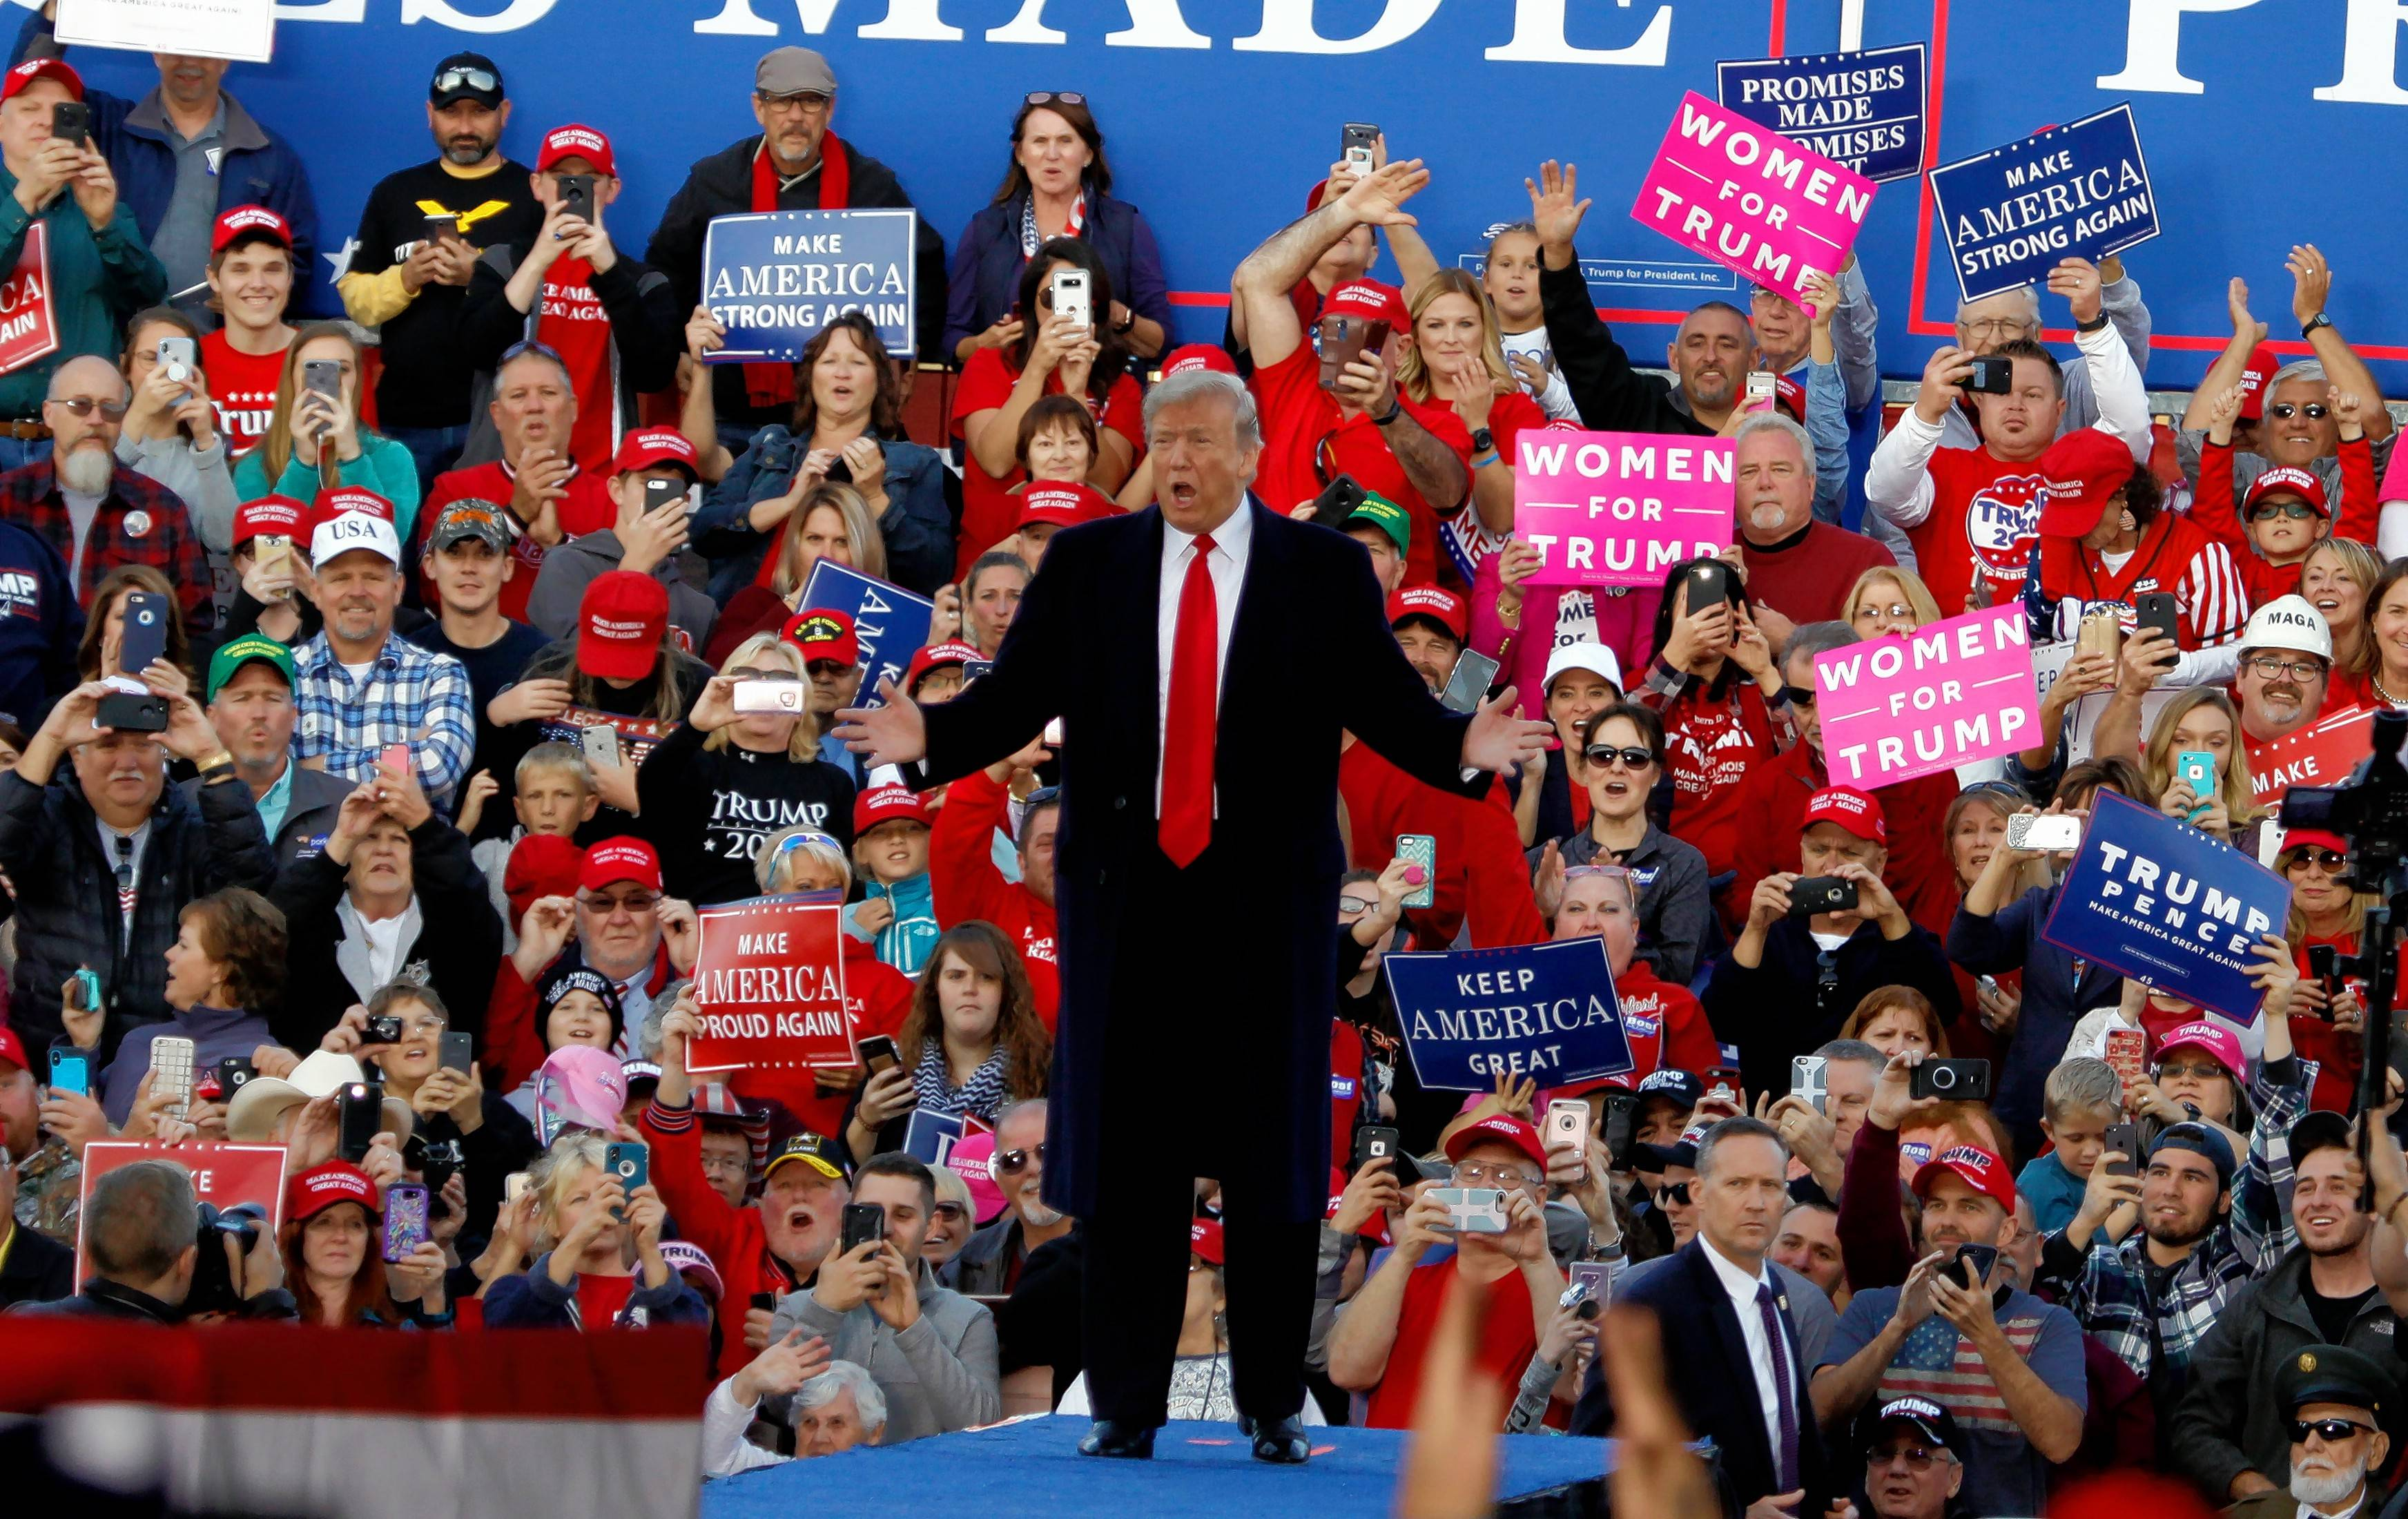 President Donald Trump speaks during a campaign rally Saturday afternoon at Southern Illinois Airport in Murphysboro. Trump's visit was part of an effort to shore up Republican support for incumbent Republican Congressman Mike Bost.